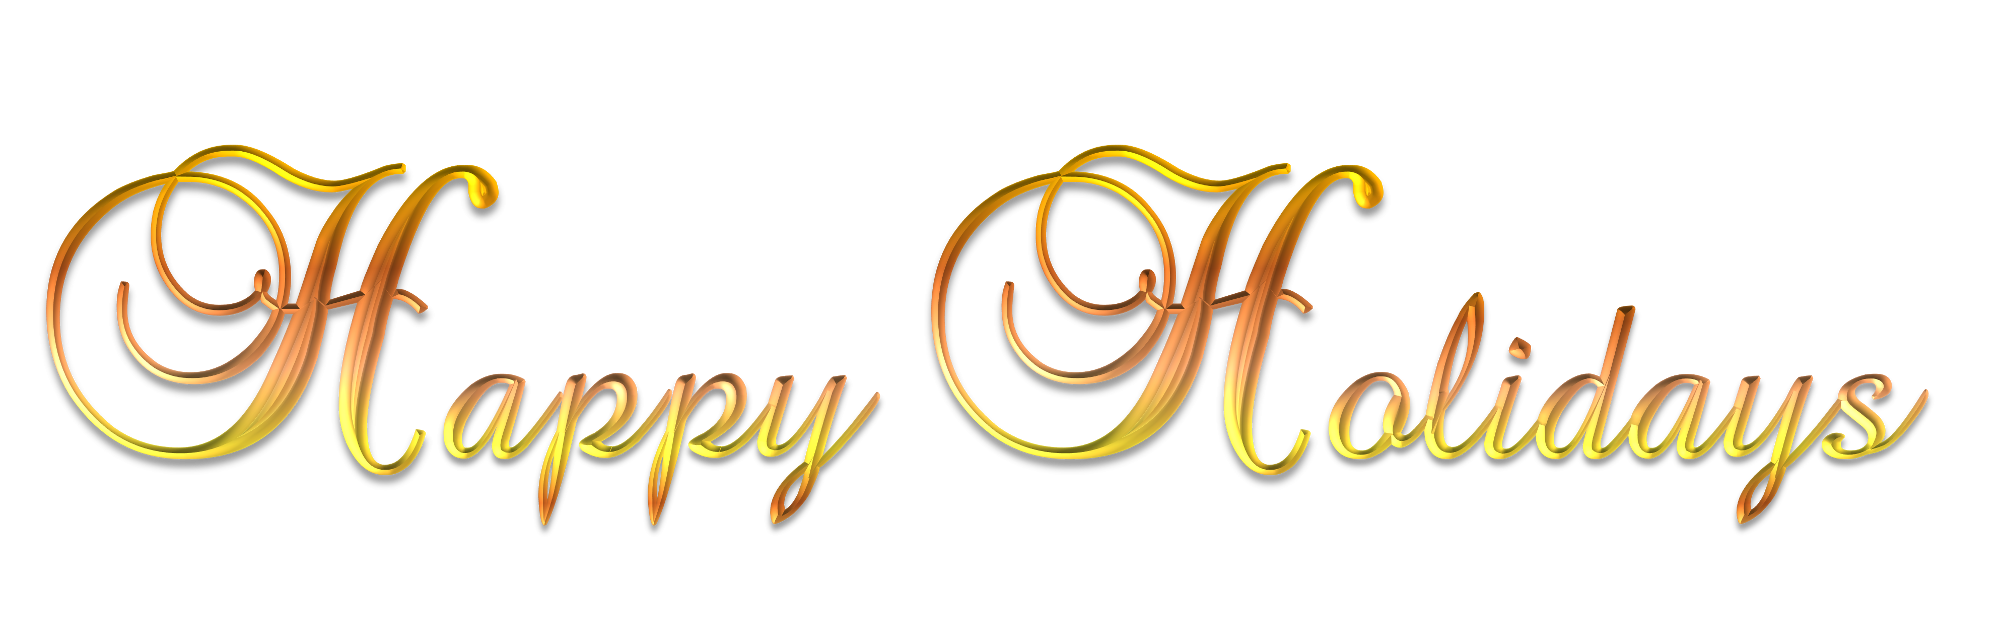 Download Free High-quality Happy Holidays Png Transparent Images image #34696